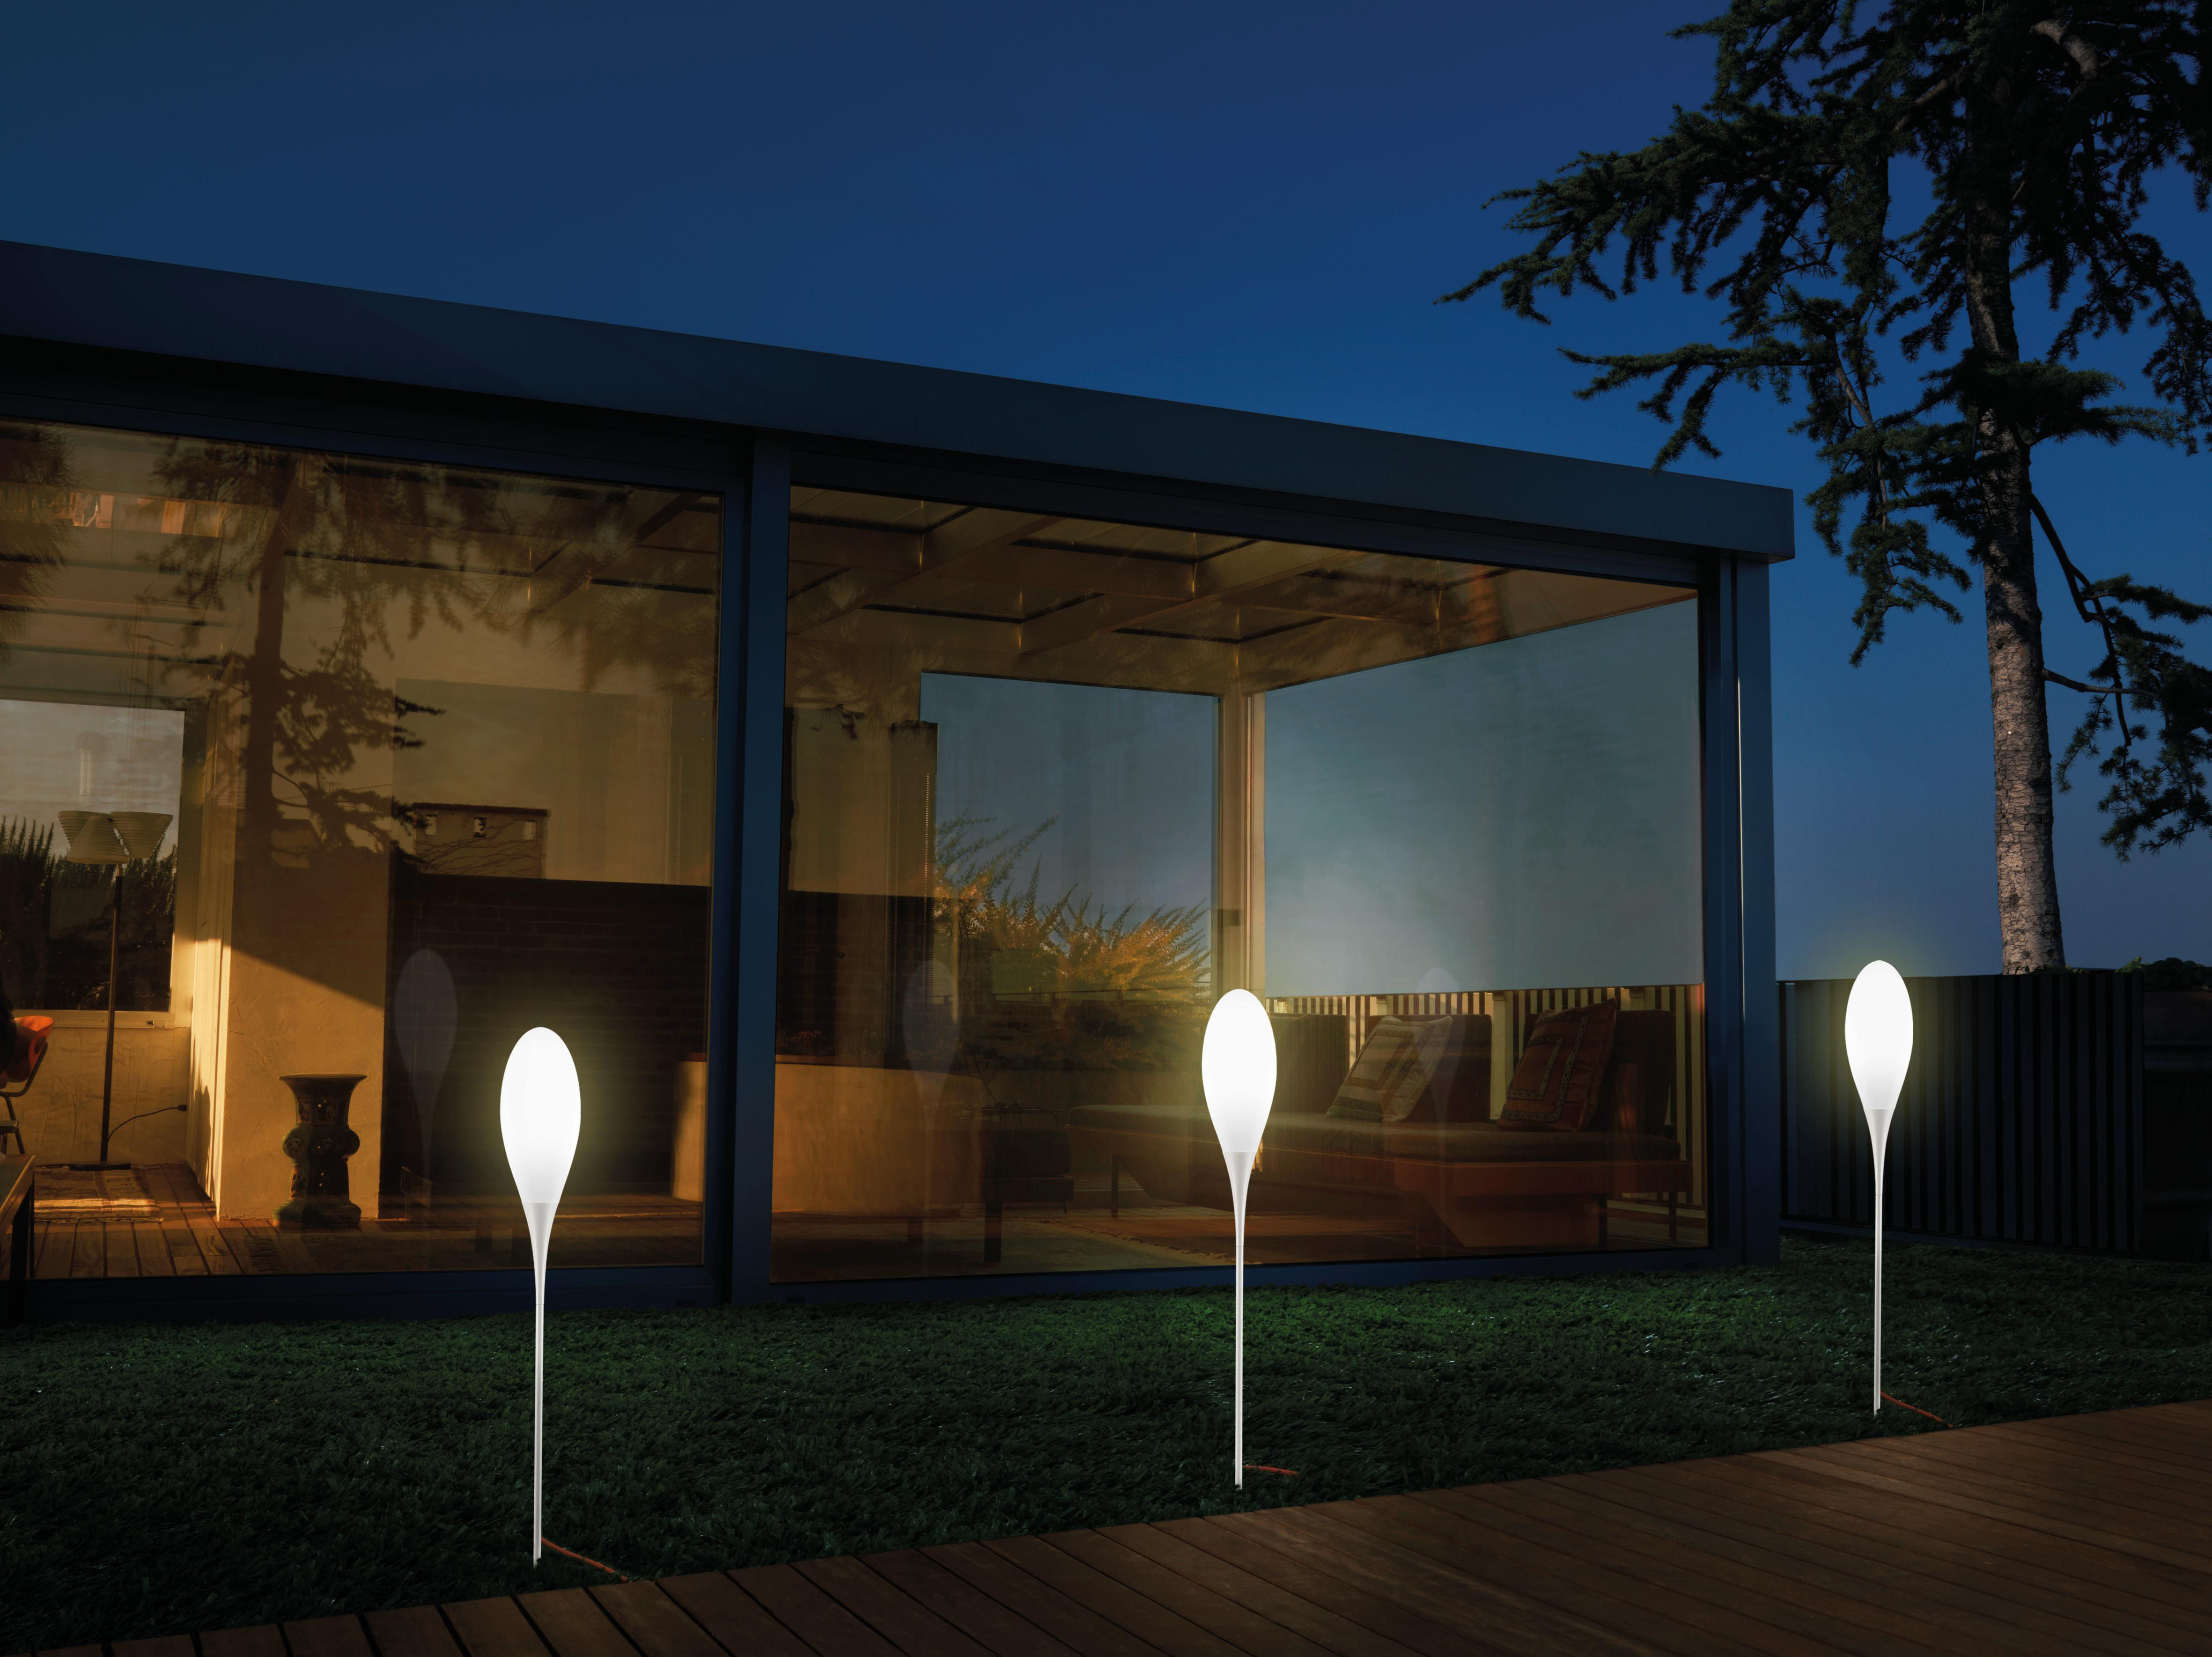 Guzzini illuminazione esterni: iguzzini lighting innovation for